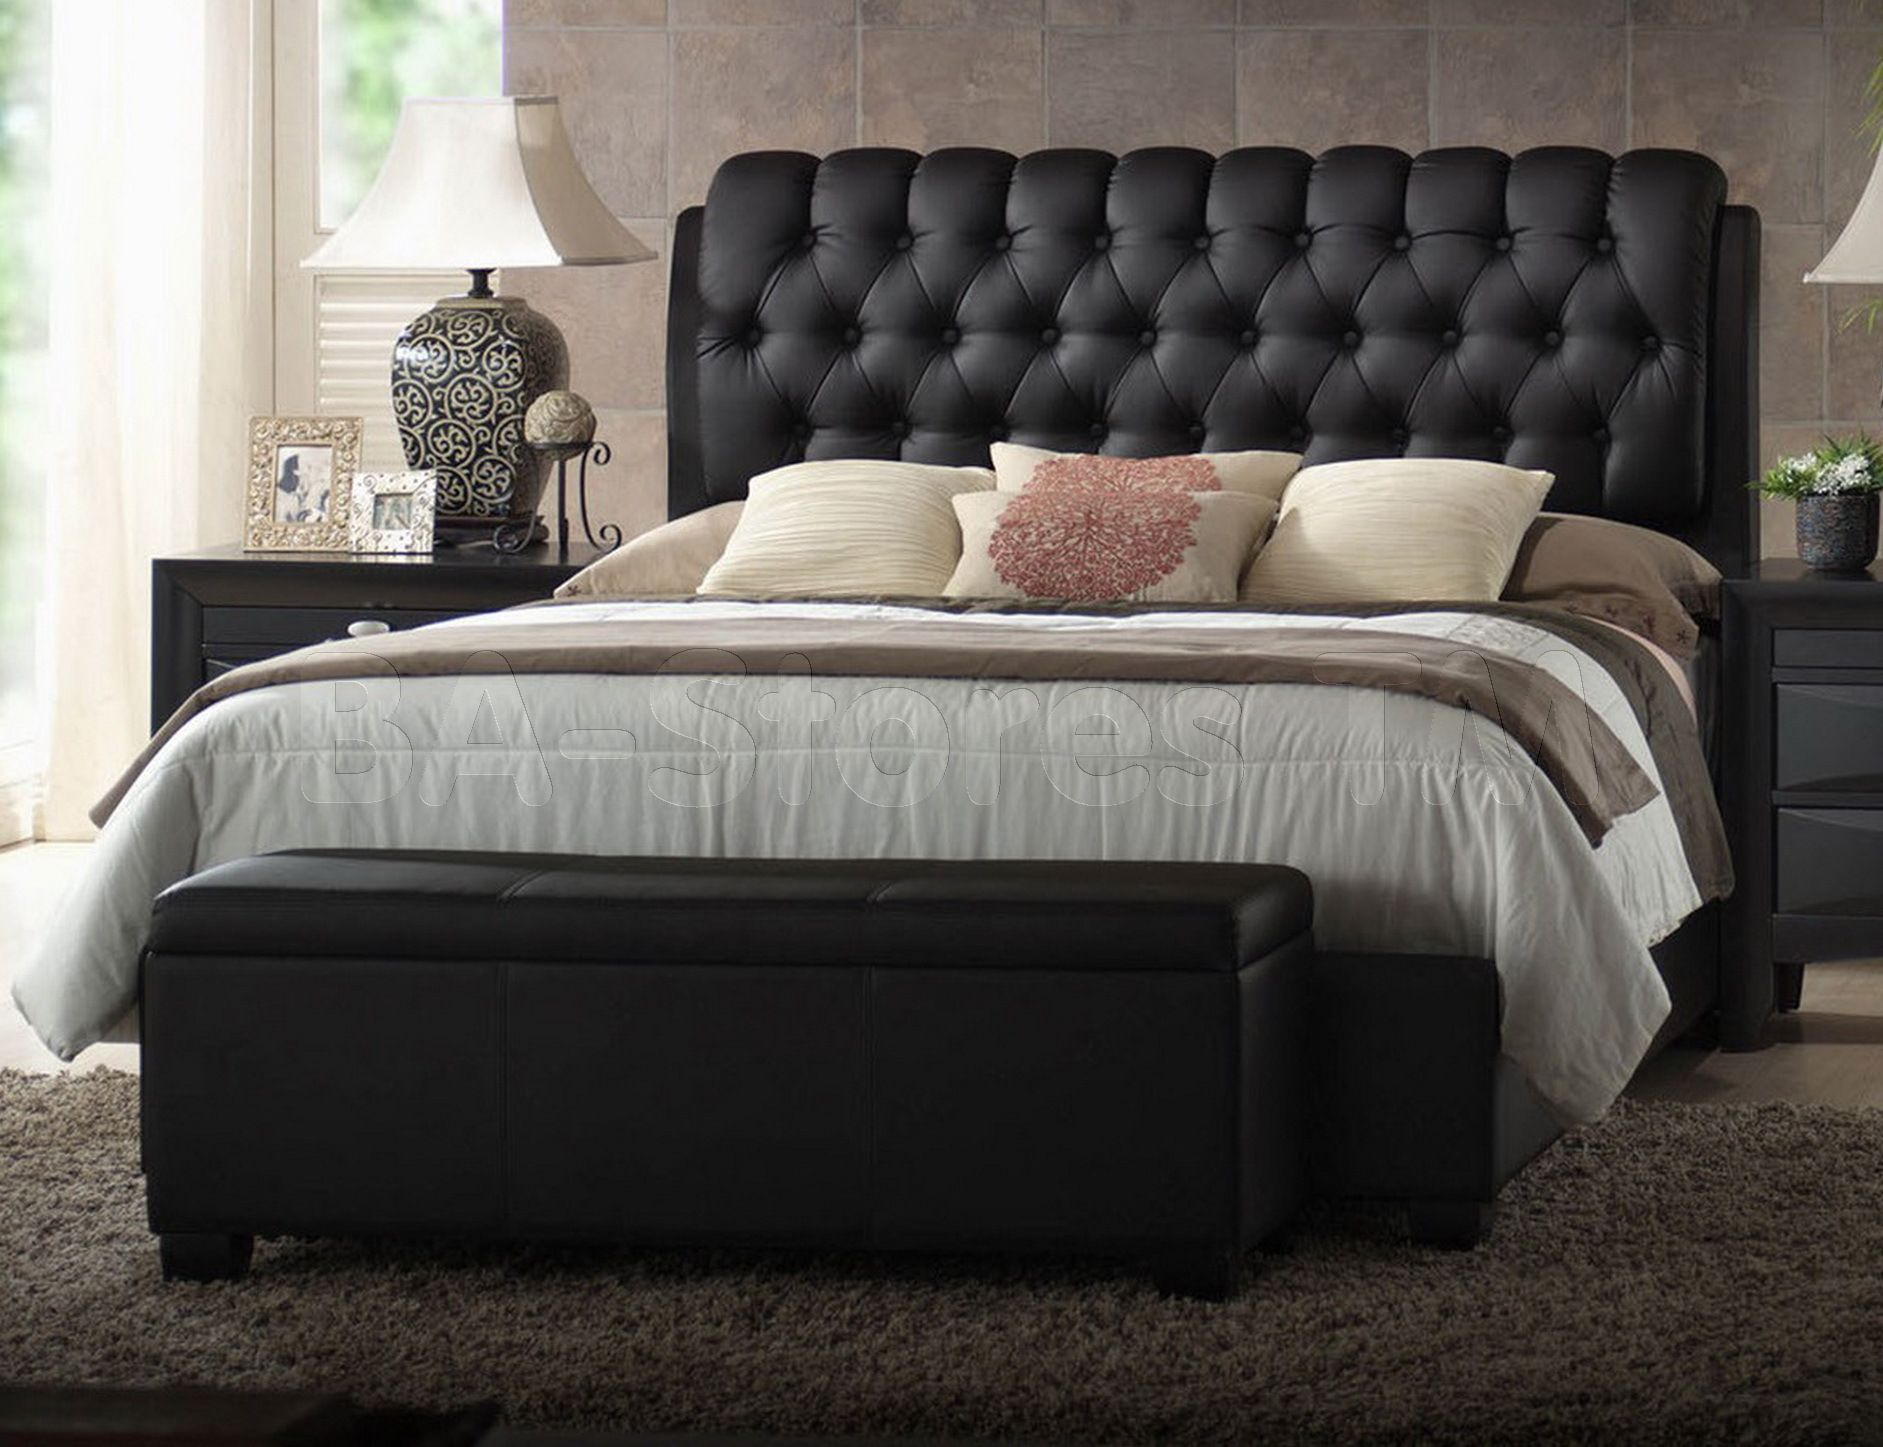 Best King Size Tufted Headboard With Contemporary Jazmin Tufted Black Modern King Bed Design Black 400 x 300